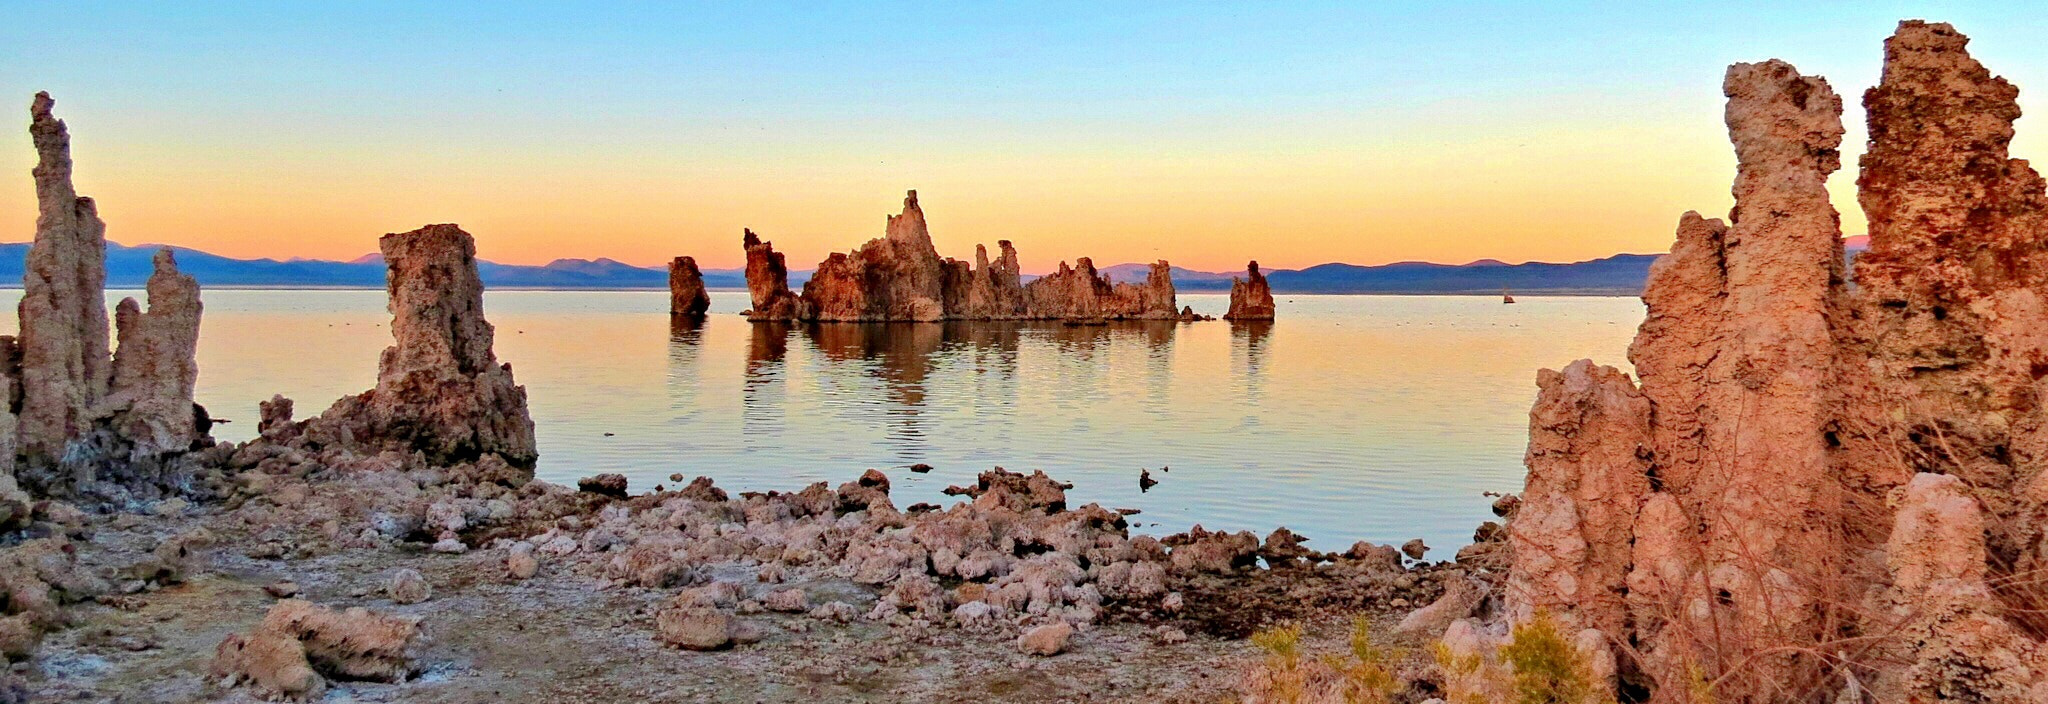 Photograph Mono Lake / Panorama by Earl Bates on 500px